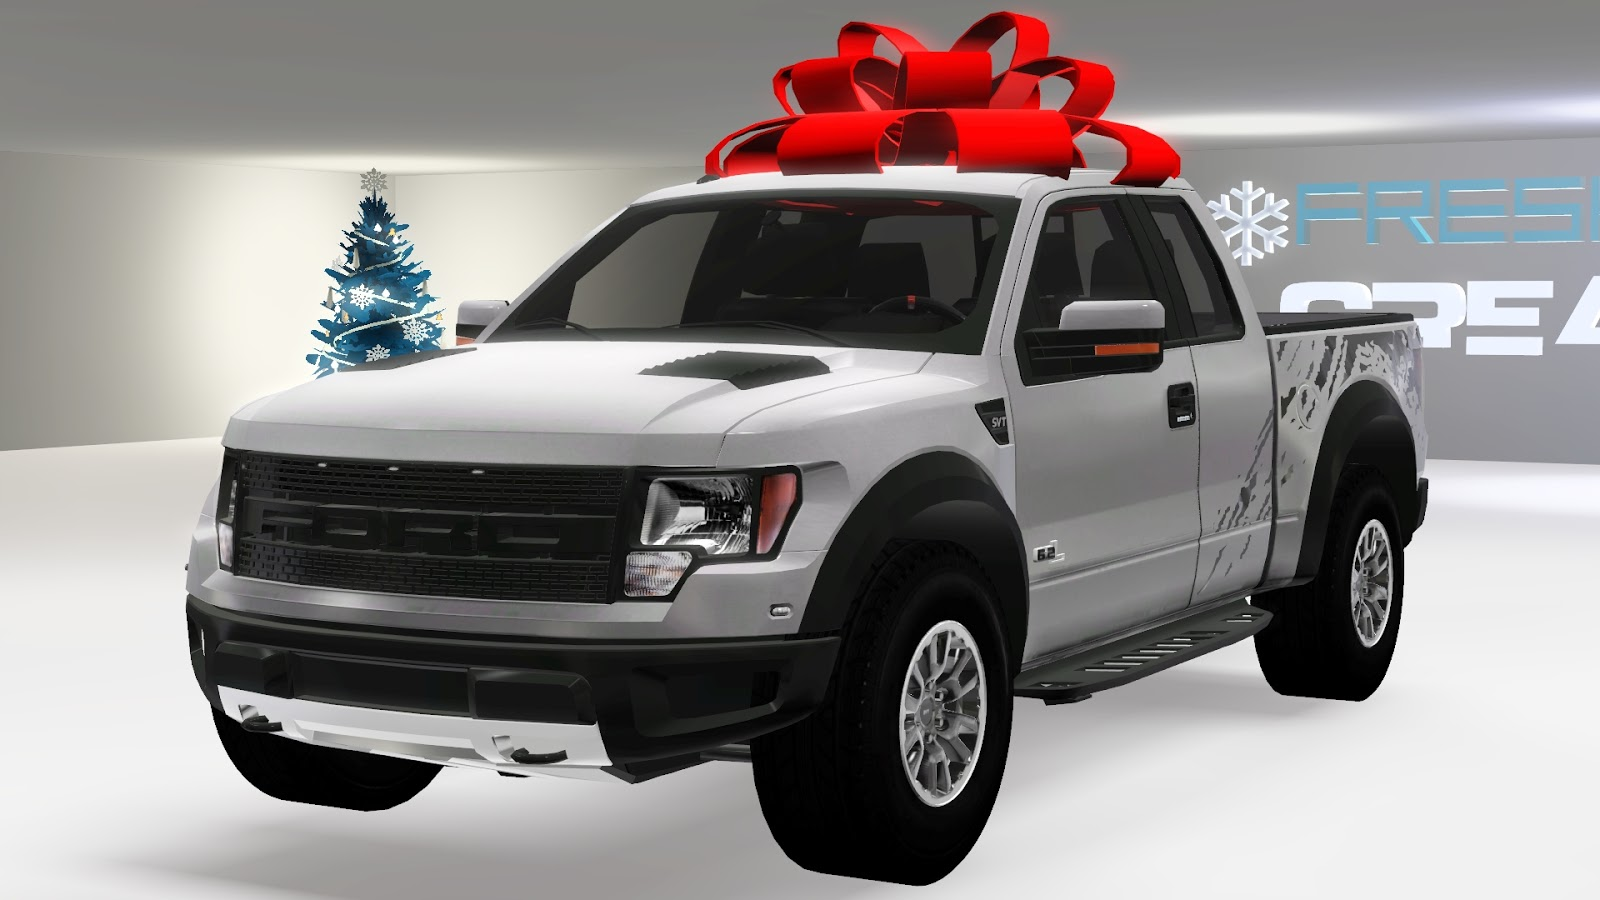 my sims 3 blog 2011 ford f 150 svt raptor by fresh prince. Black Bedroom Furniture Sets. Home Design Ideas